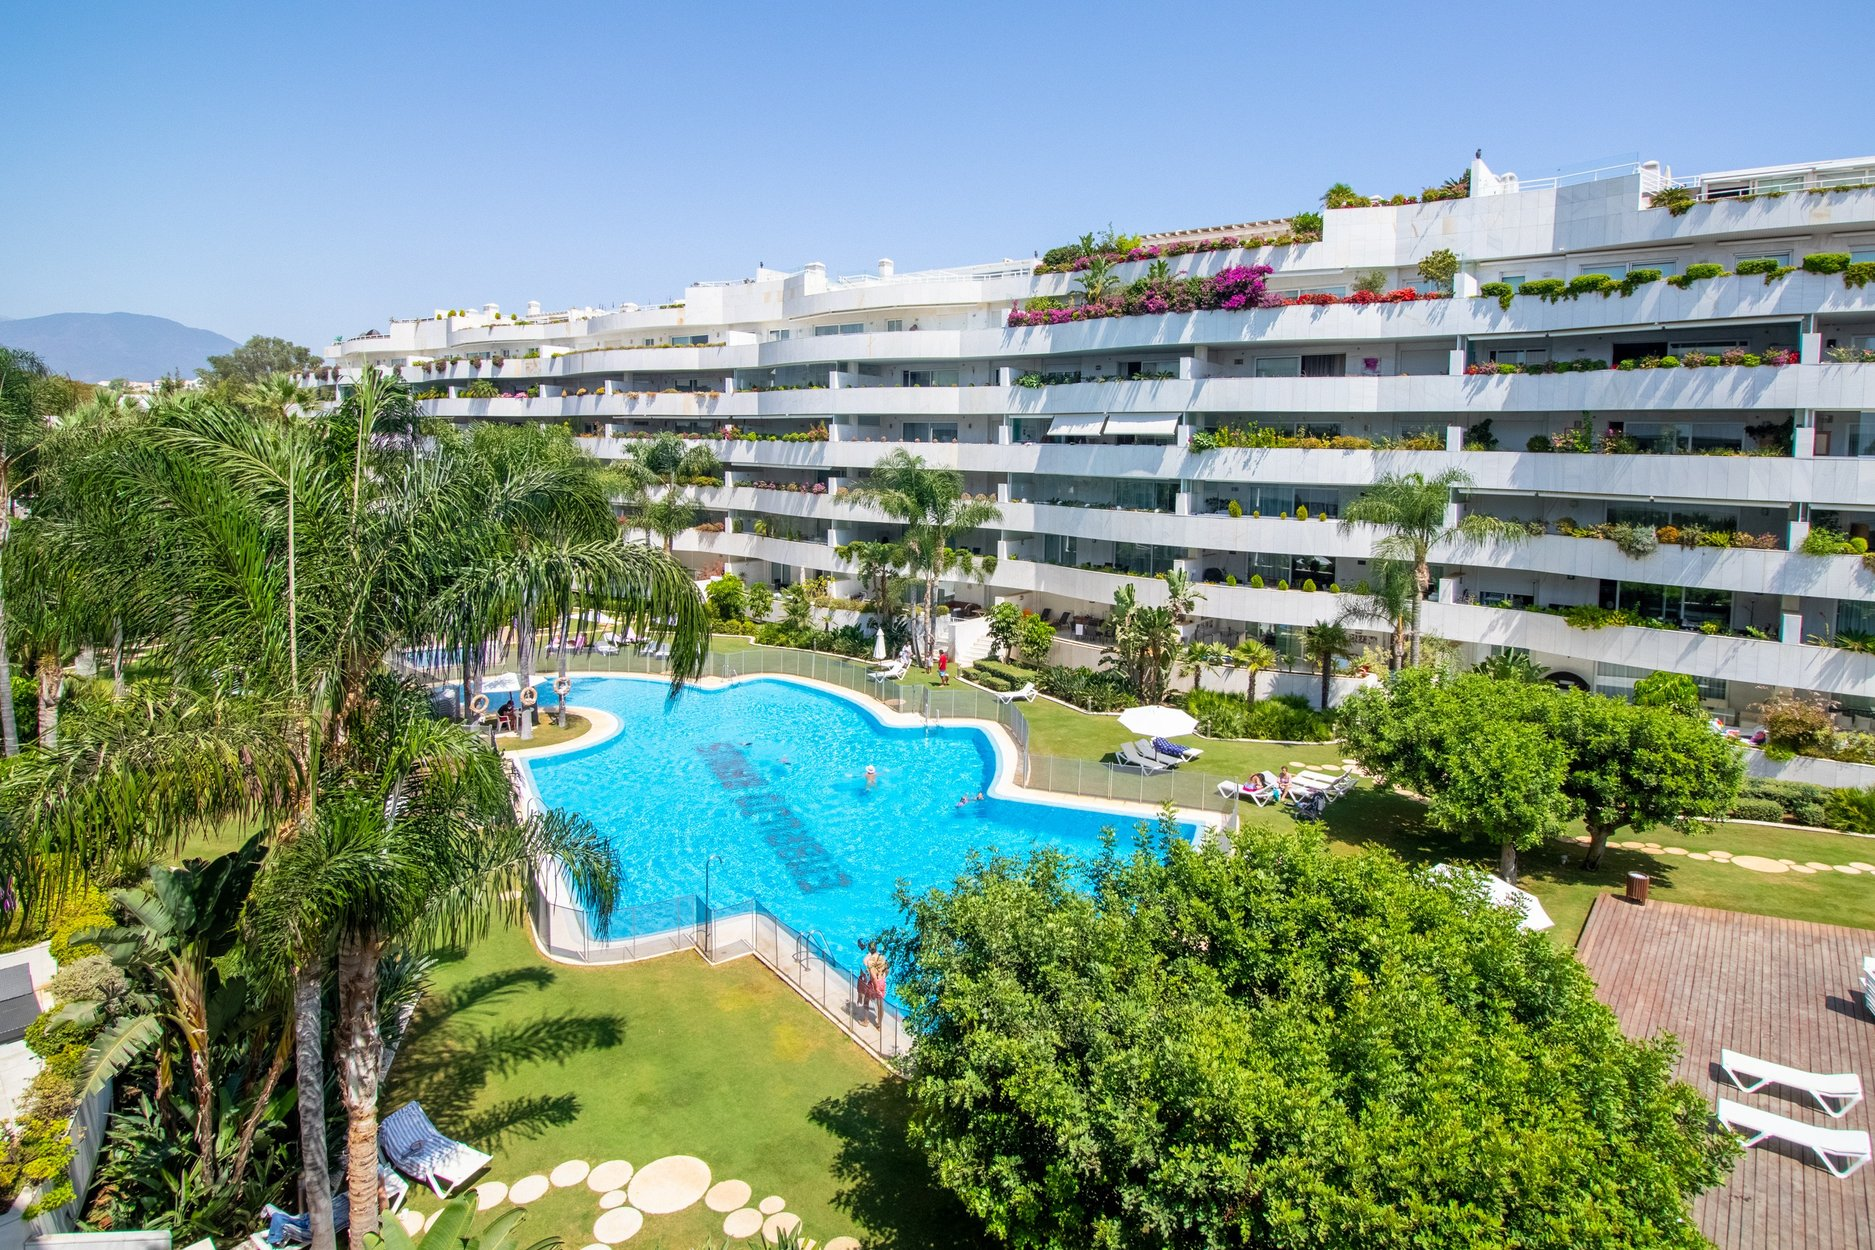 aaa3 bedroom Apartment in Puerto Banus, Marbella | M421448